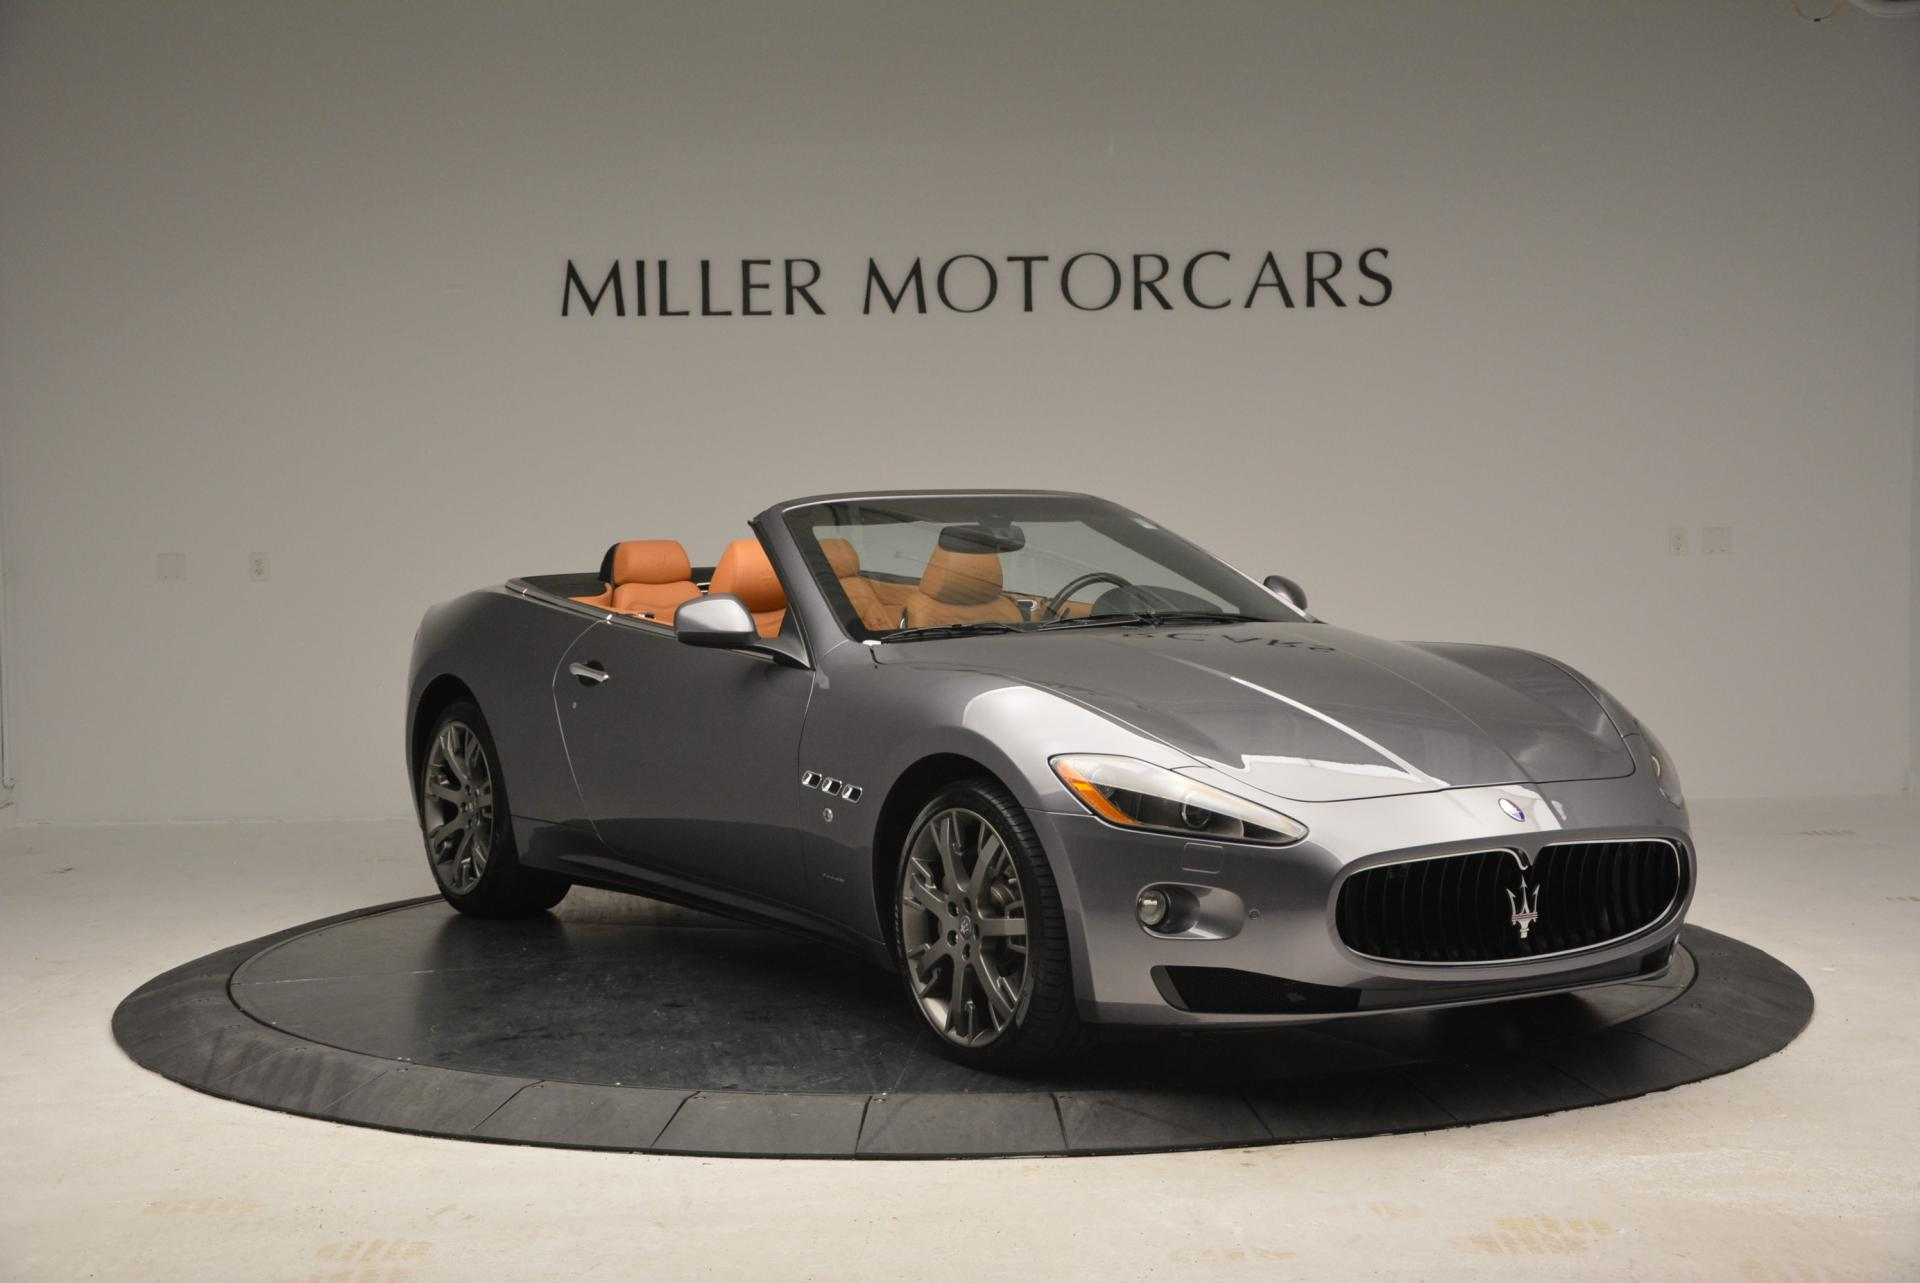 Used 2012 Maserati GranTurismo  For Sale In Westport, CT 161_p11